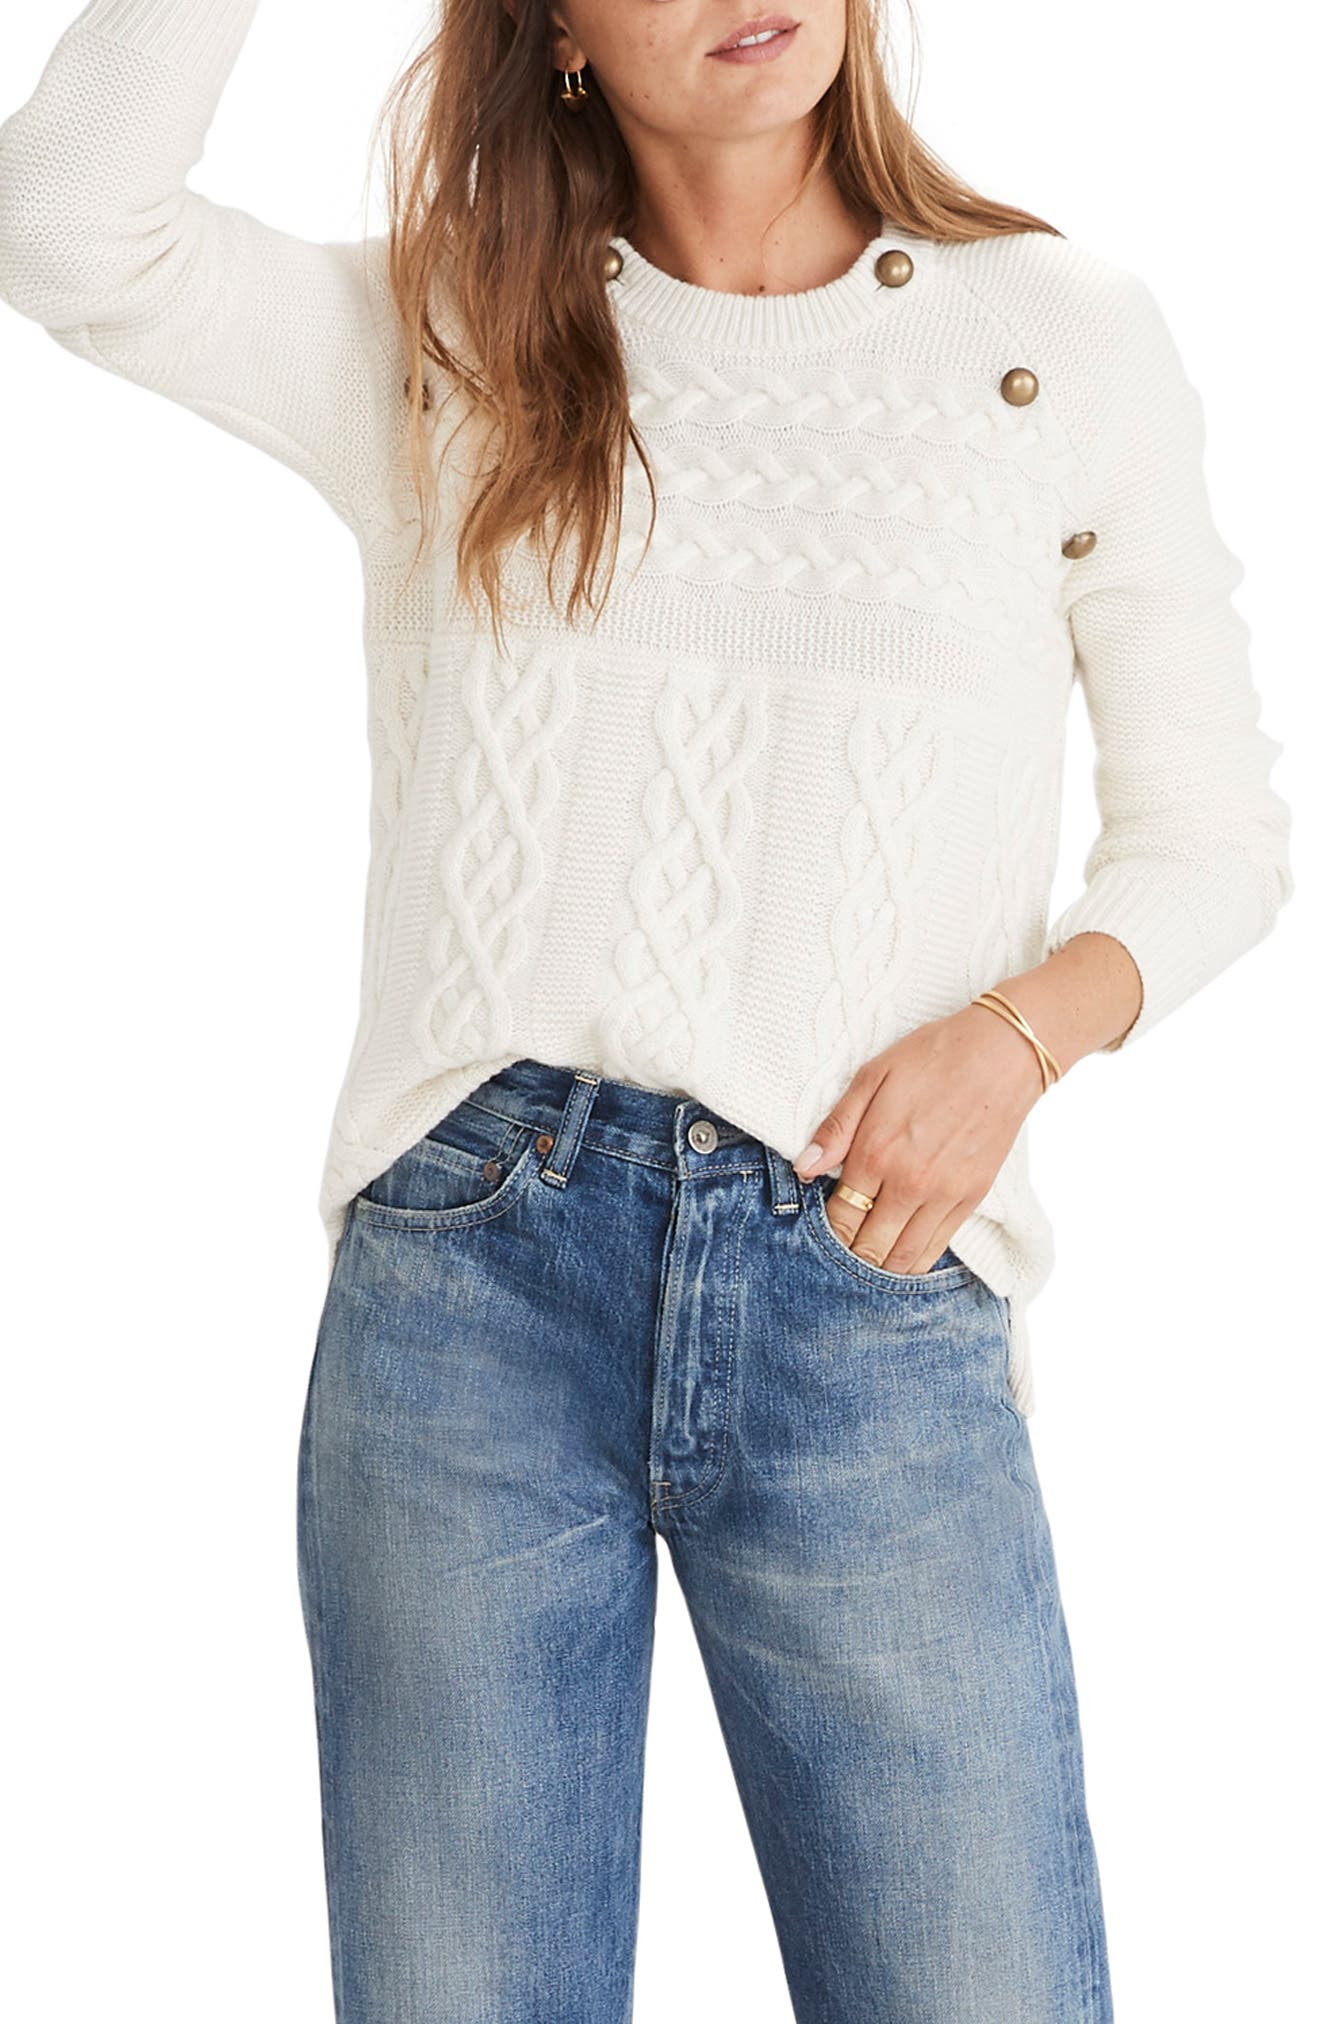 MADEWELL Button Detail Cable Knit Pullover Sweater, Main, color, 100